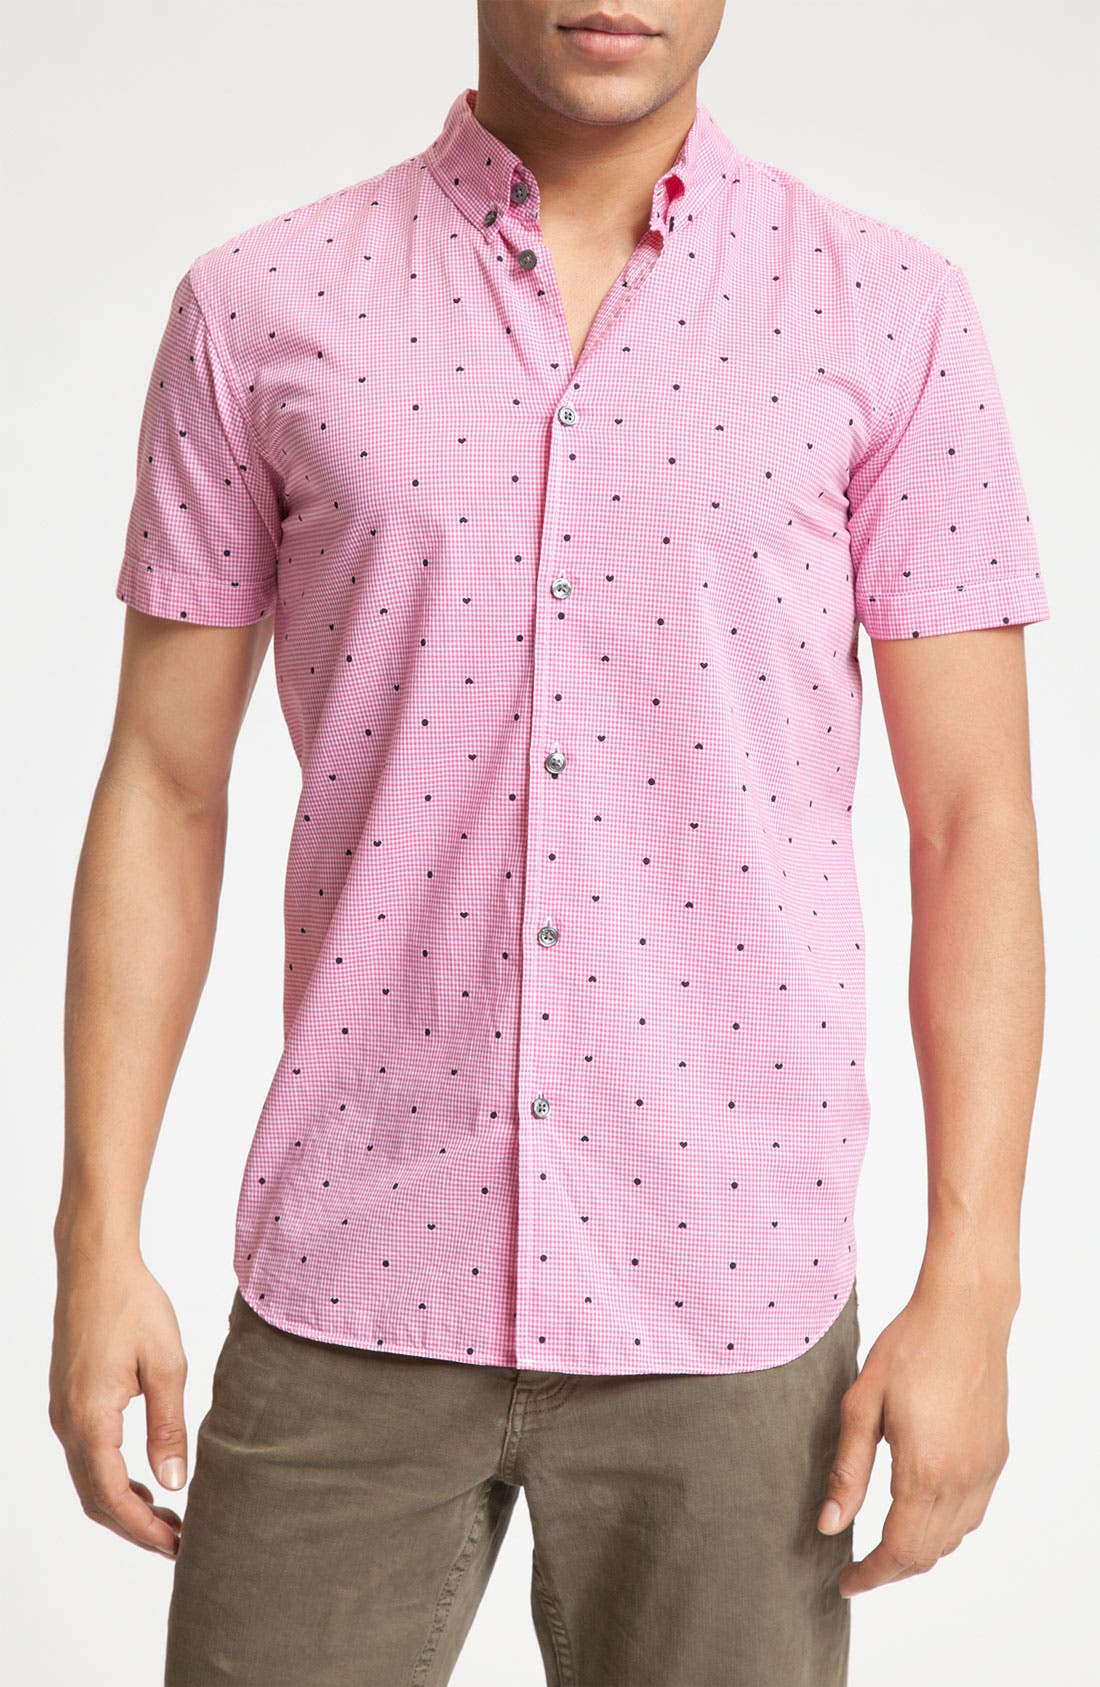 Alternate Image 1 Selected - MARC BY MARC JACOBS 'Hearts & Dots' Shirt